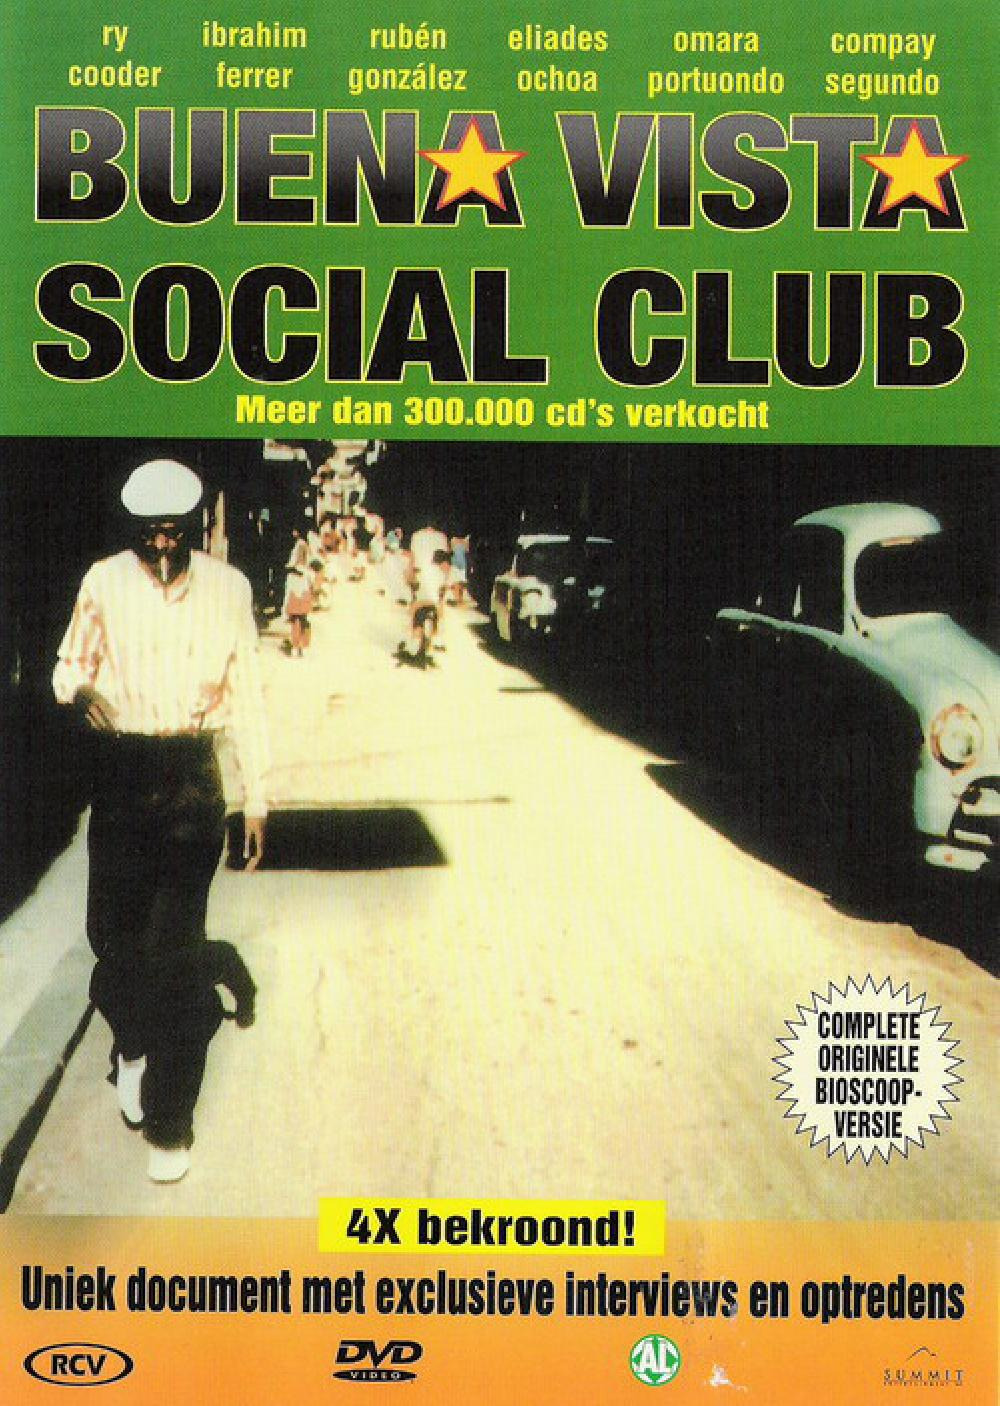 BUENA VISTA SOCIAL CLUB - Buena Vista Social Club - DVD